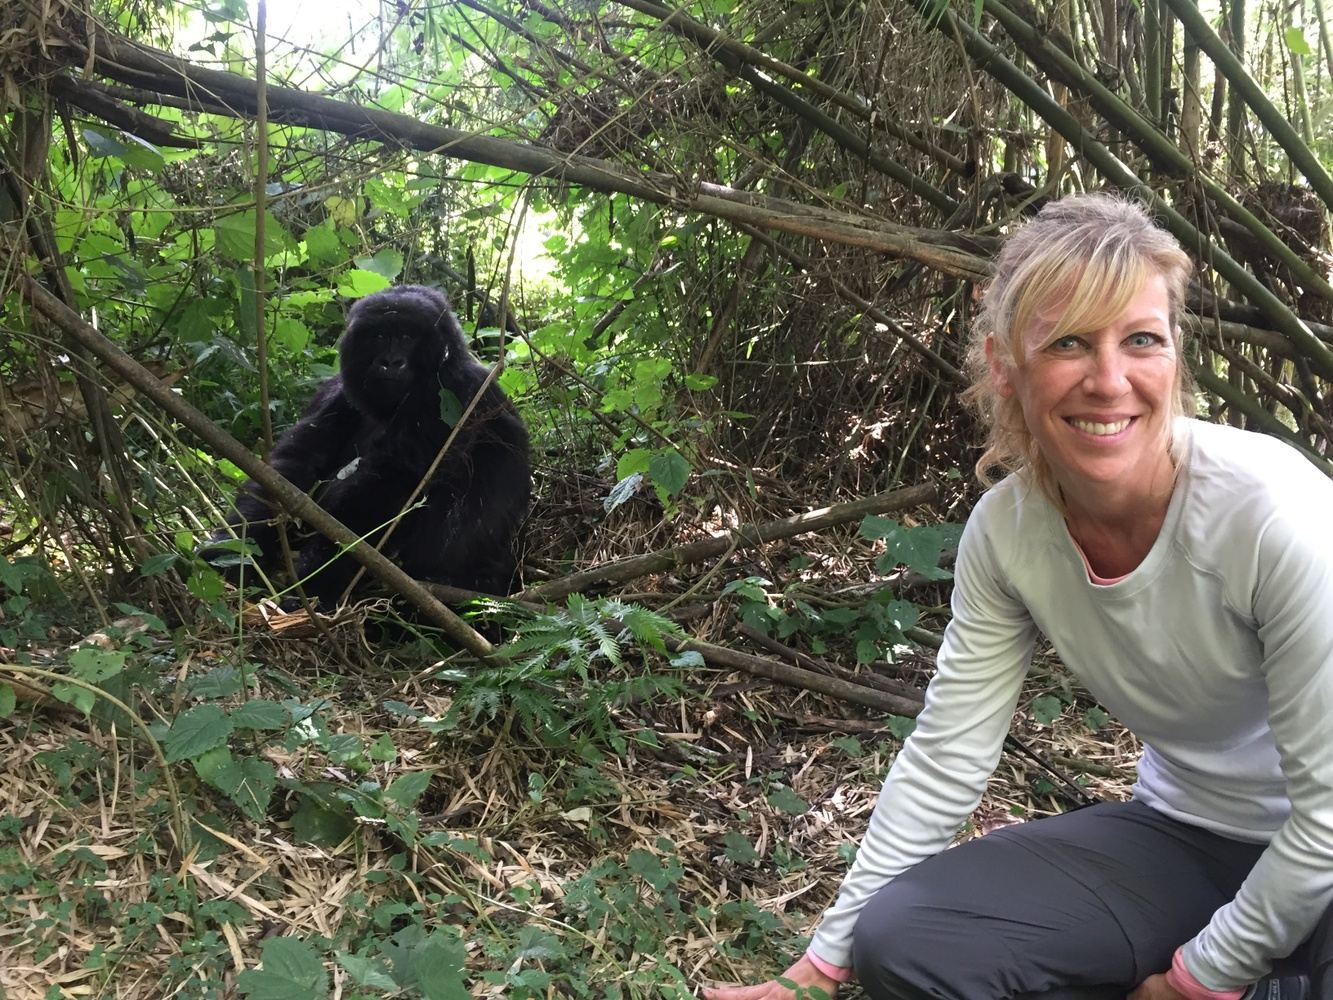 All-Inclusive Luxury Rwanda, with Colleen Patrick-Goudreau - 2021